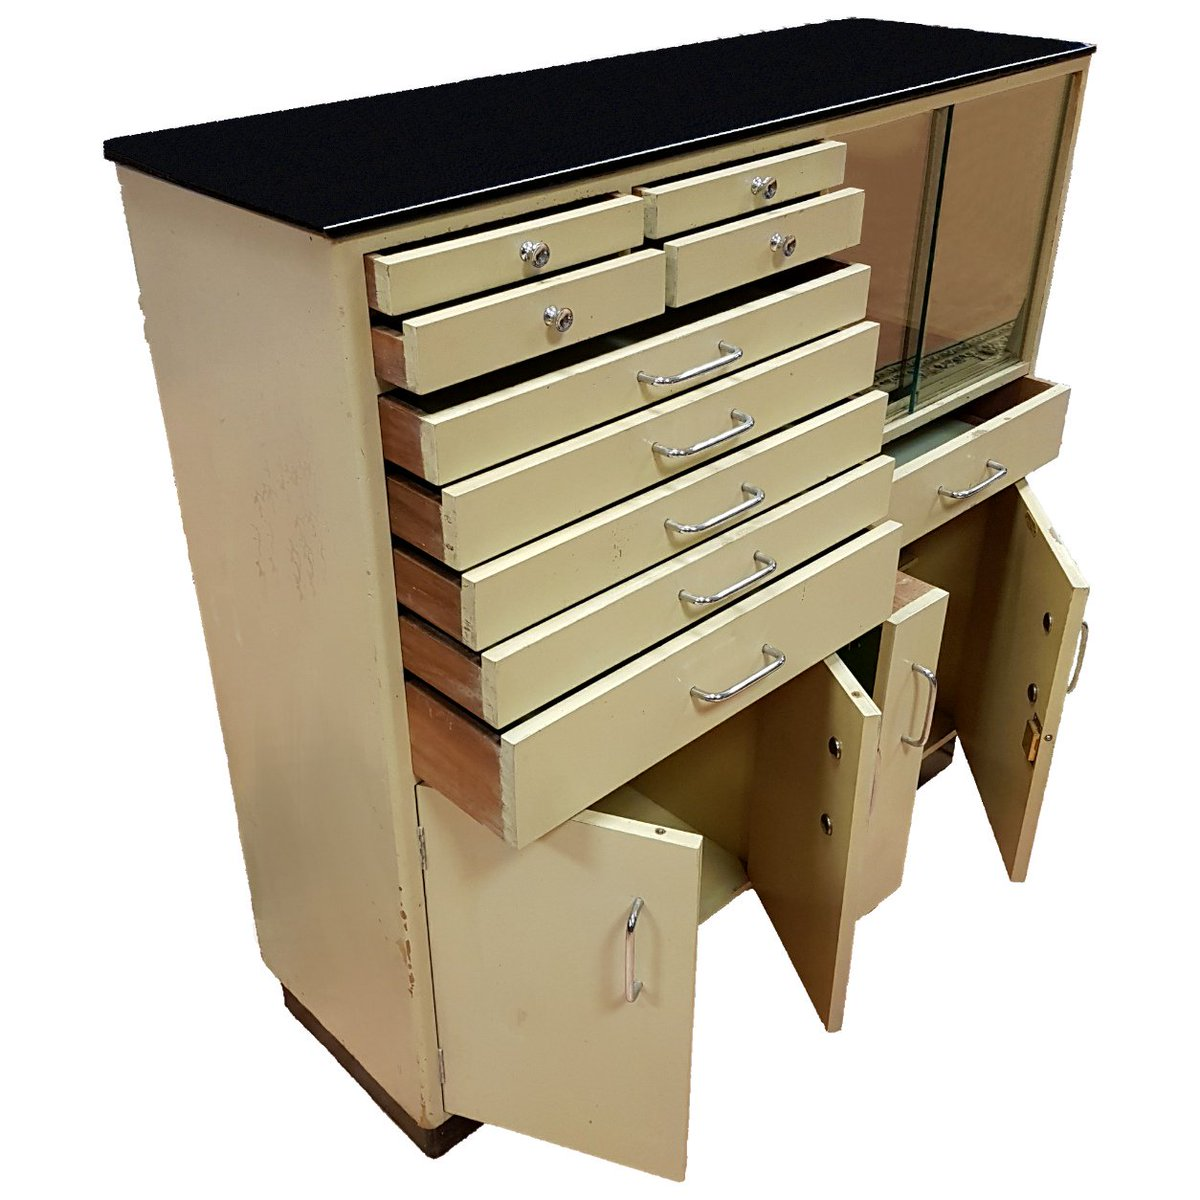 Midcentury wooden dental cabinet with glass top  https://www. home-alchemy.com/products/denta l-cabinet &nbsp; …  #dentist #medical #midcentury #cabinet #newstock #wood #glass<br>http://pic.twitter.com/kEN8Sf9a9t